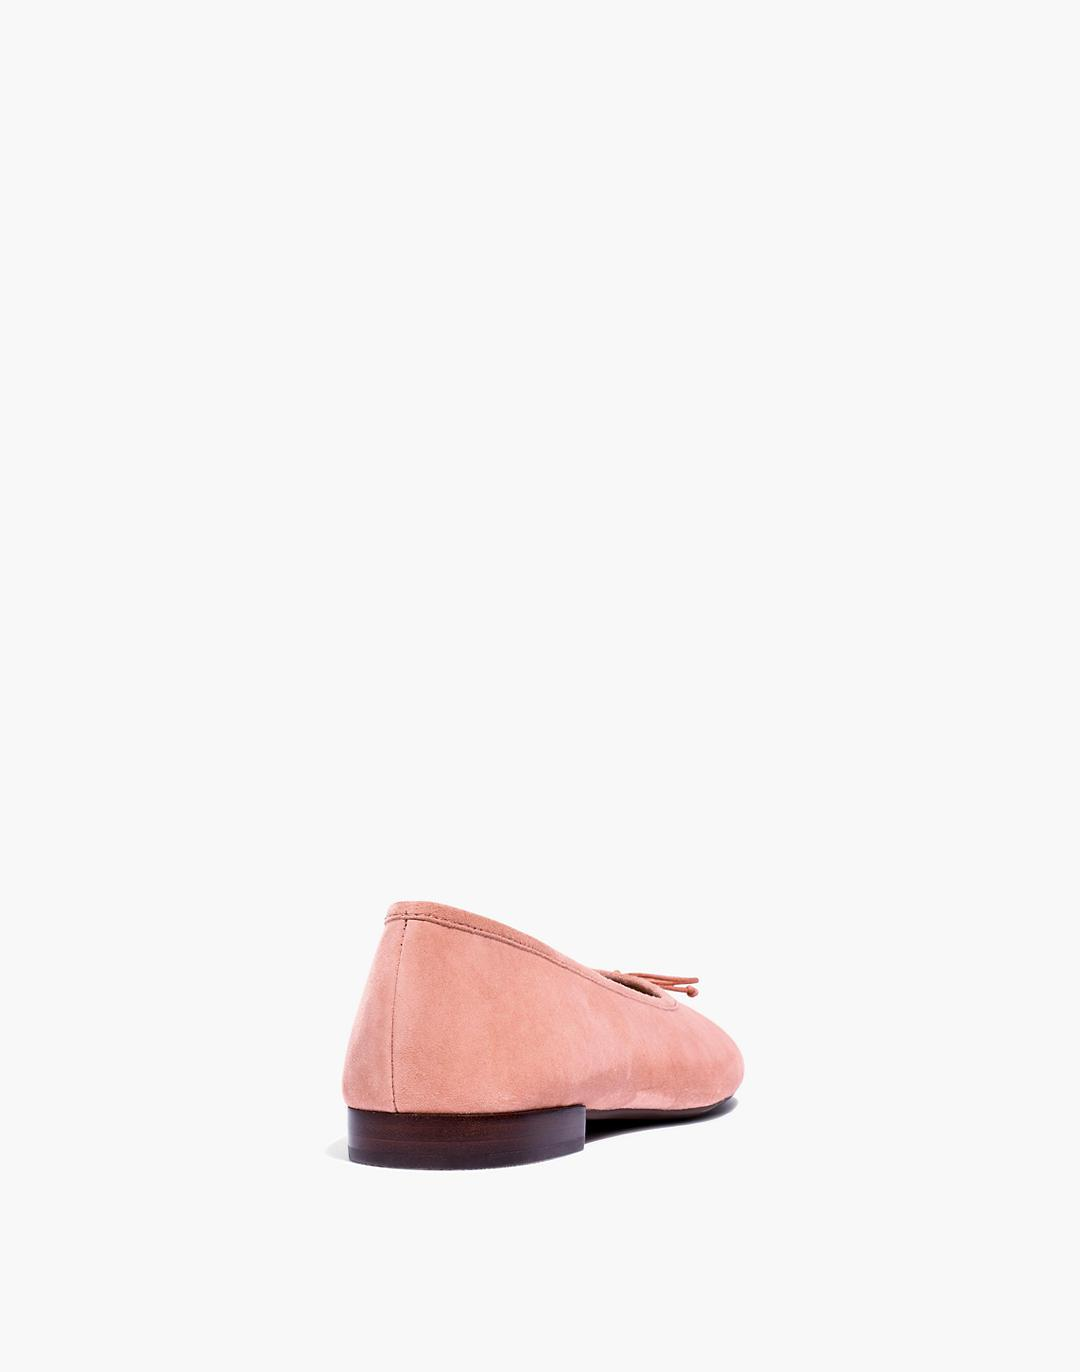 The Adelle Ballet Flat in Suede 2